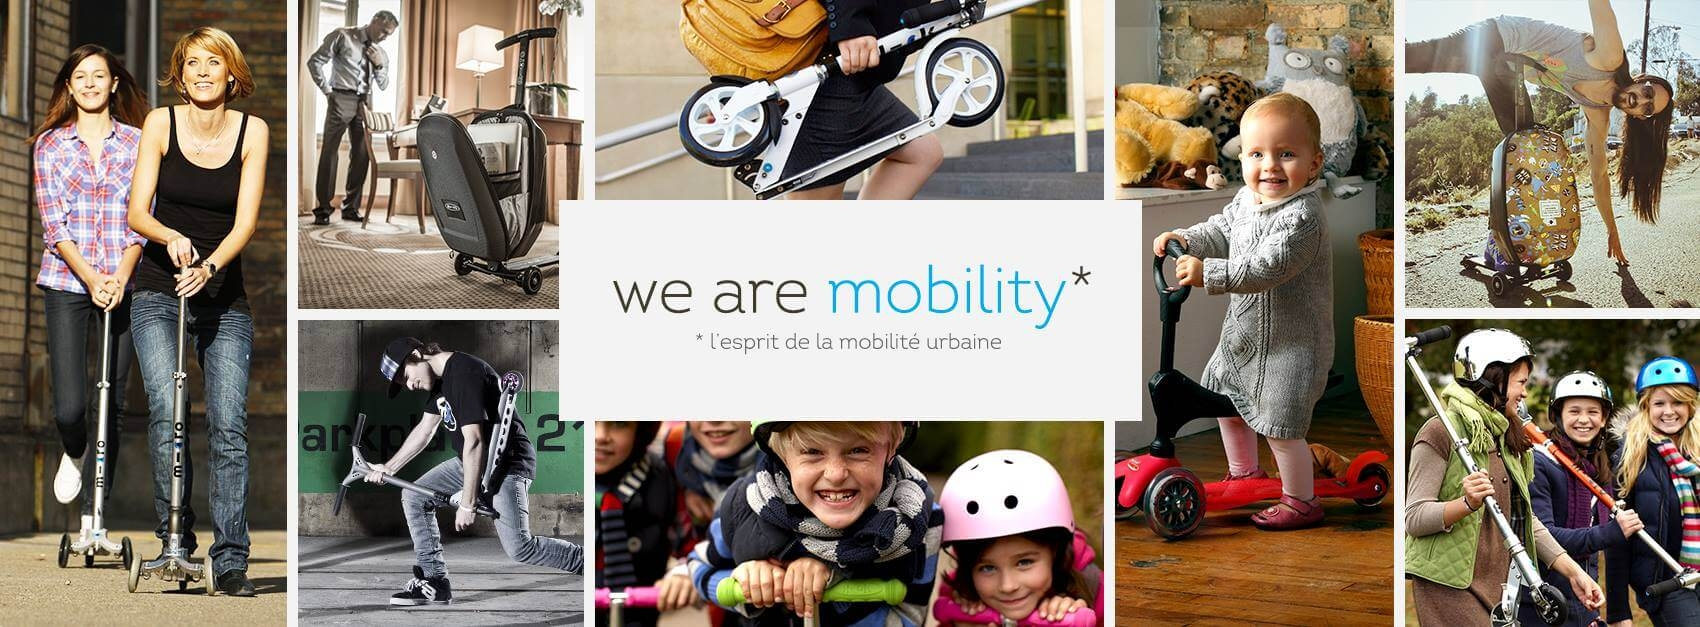 we are mobility